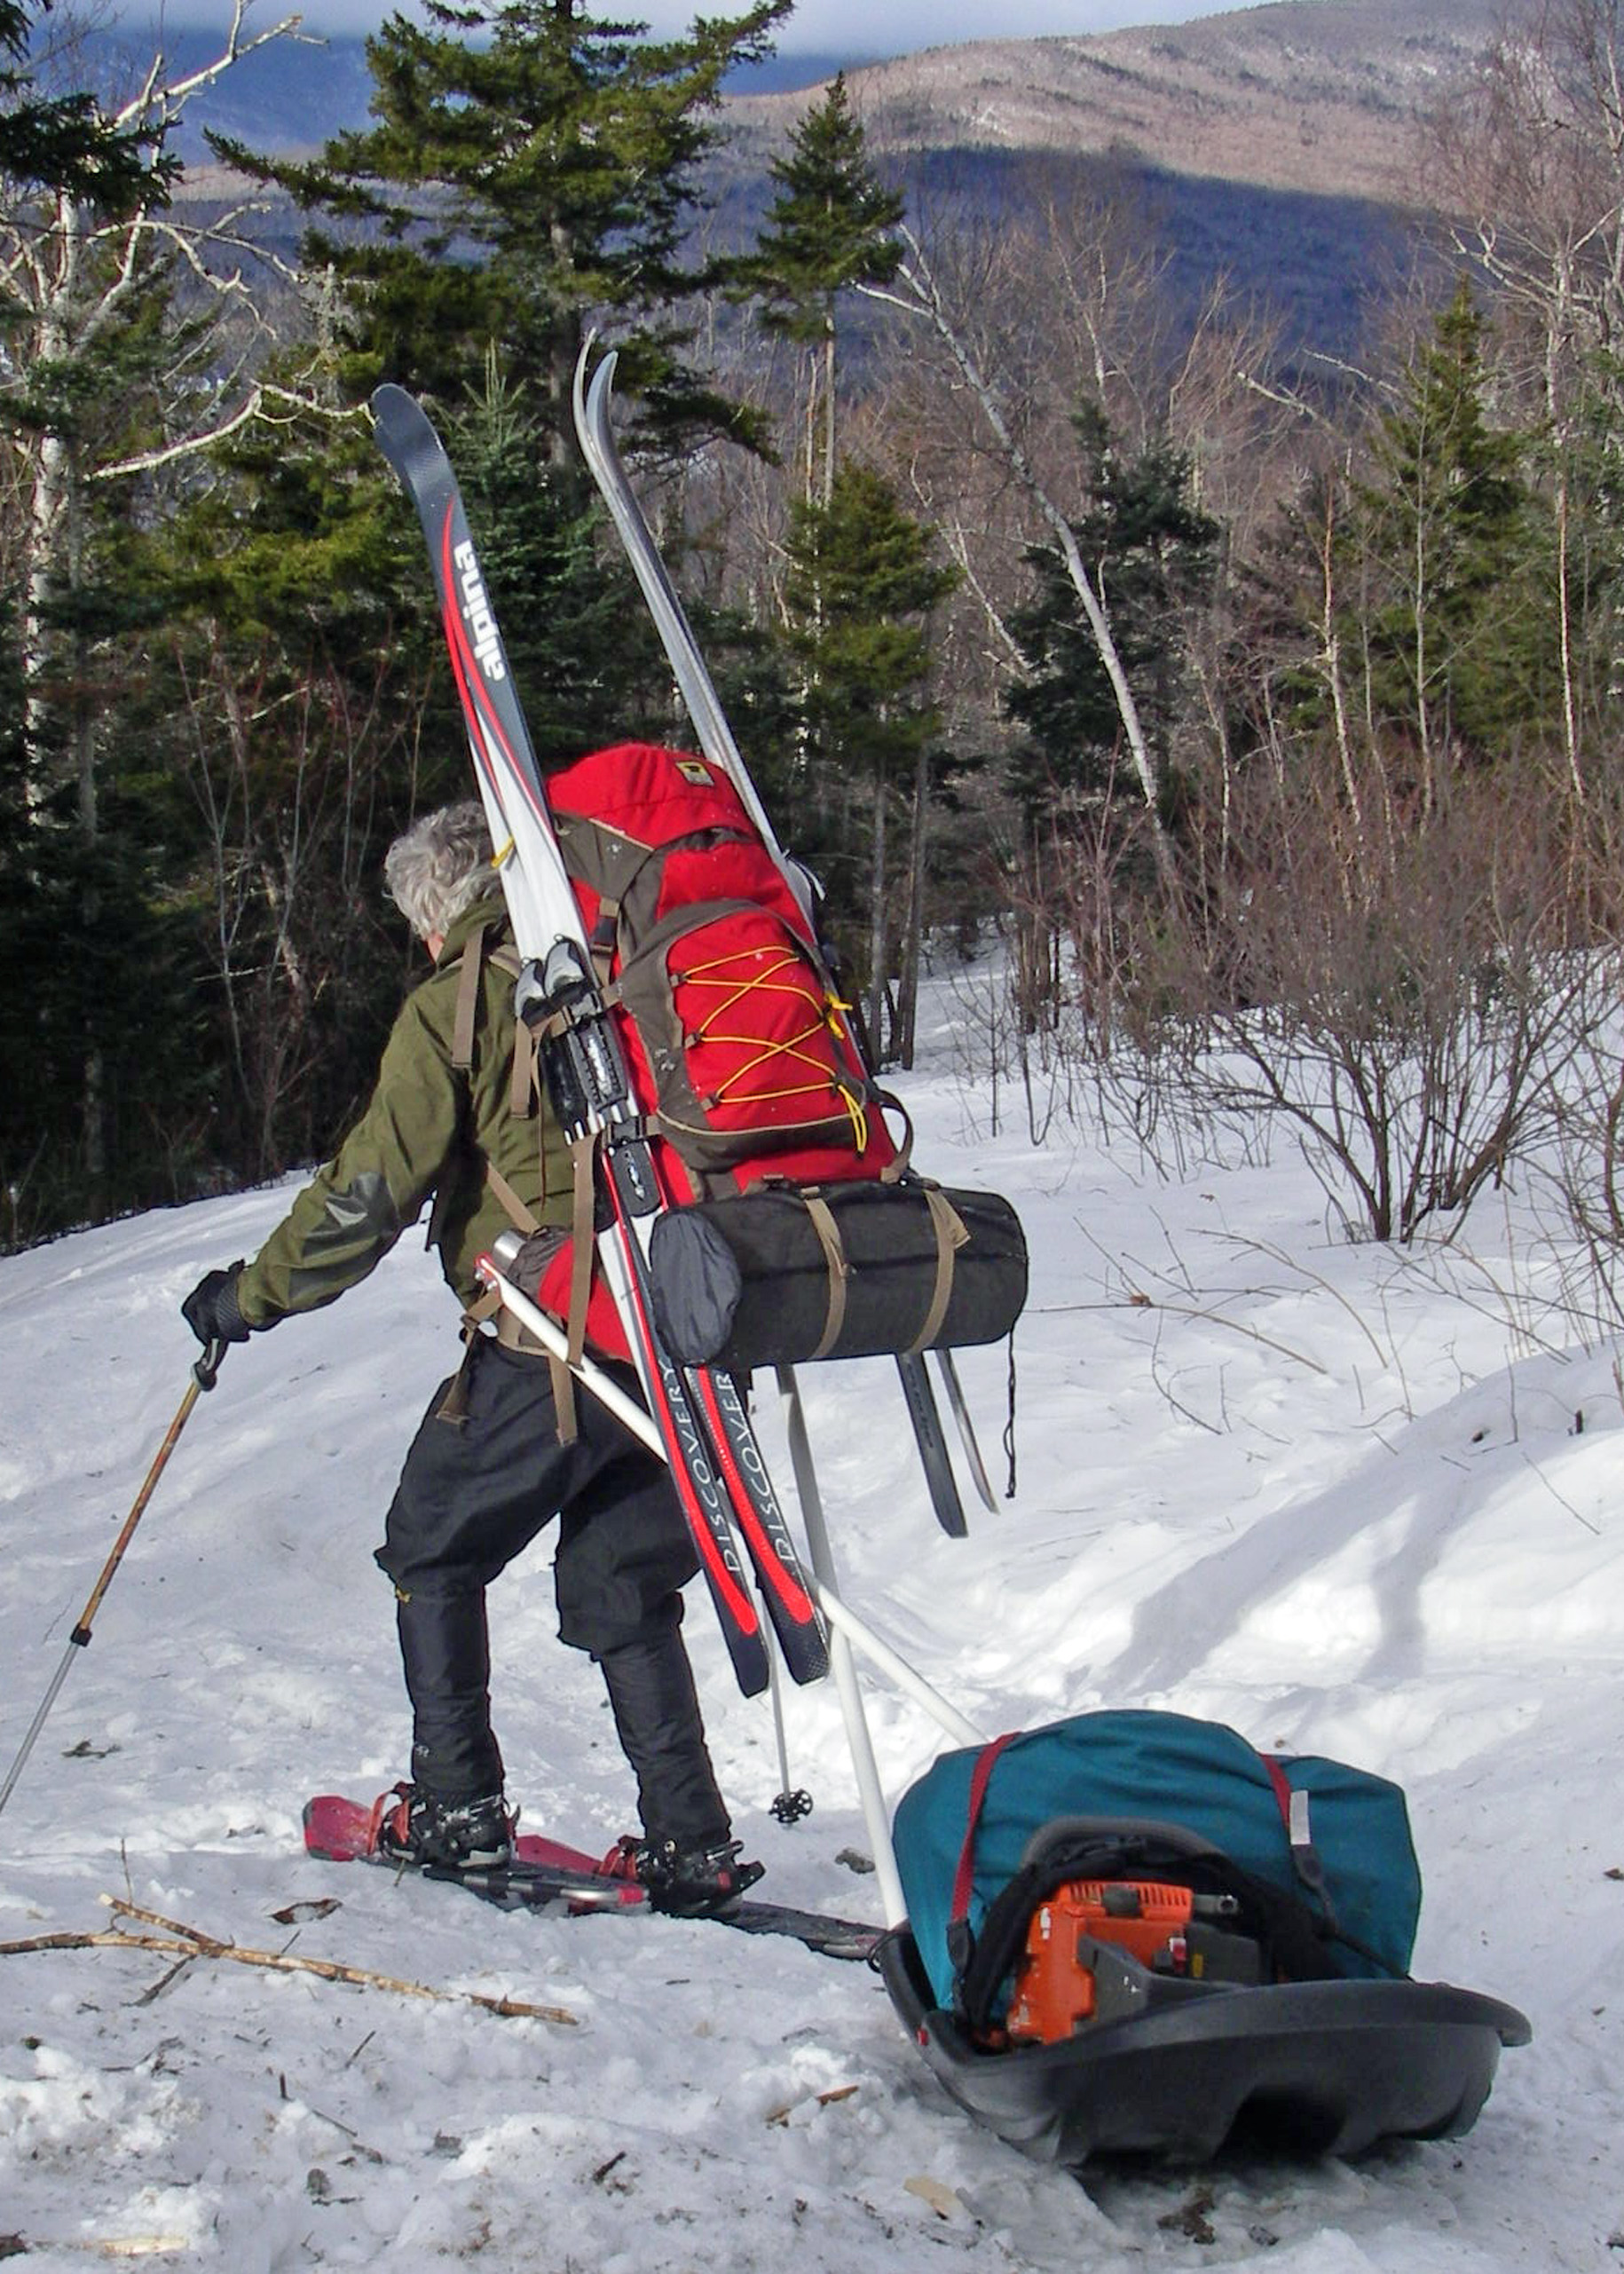 How To: Pack or Pulk For Winter Wilderness Travel